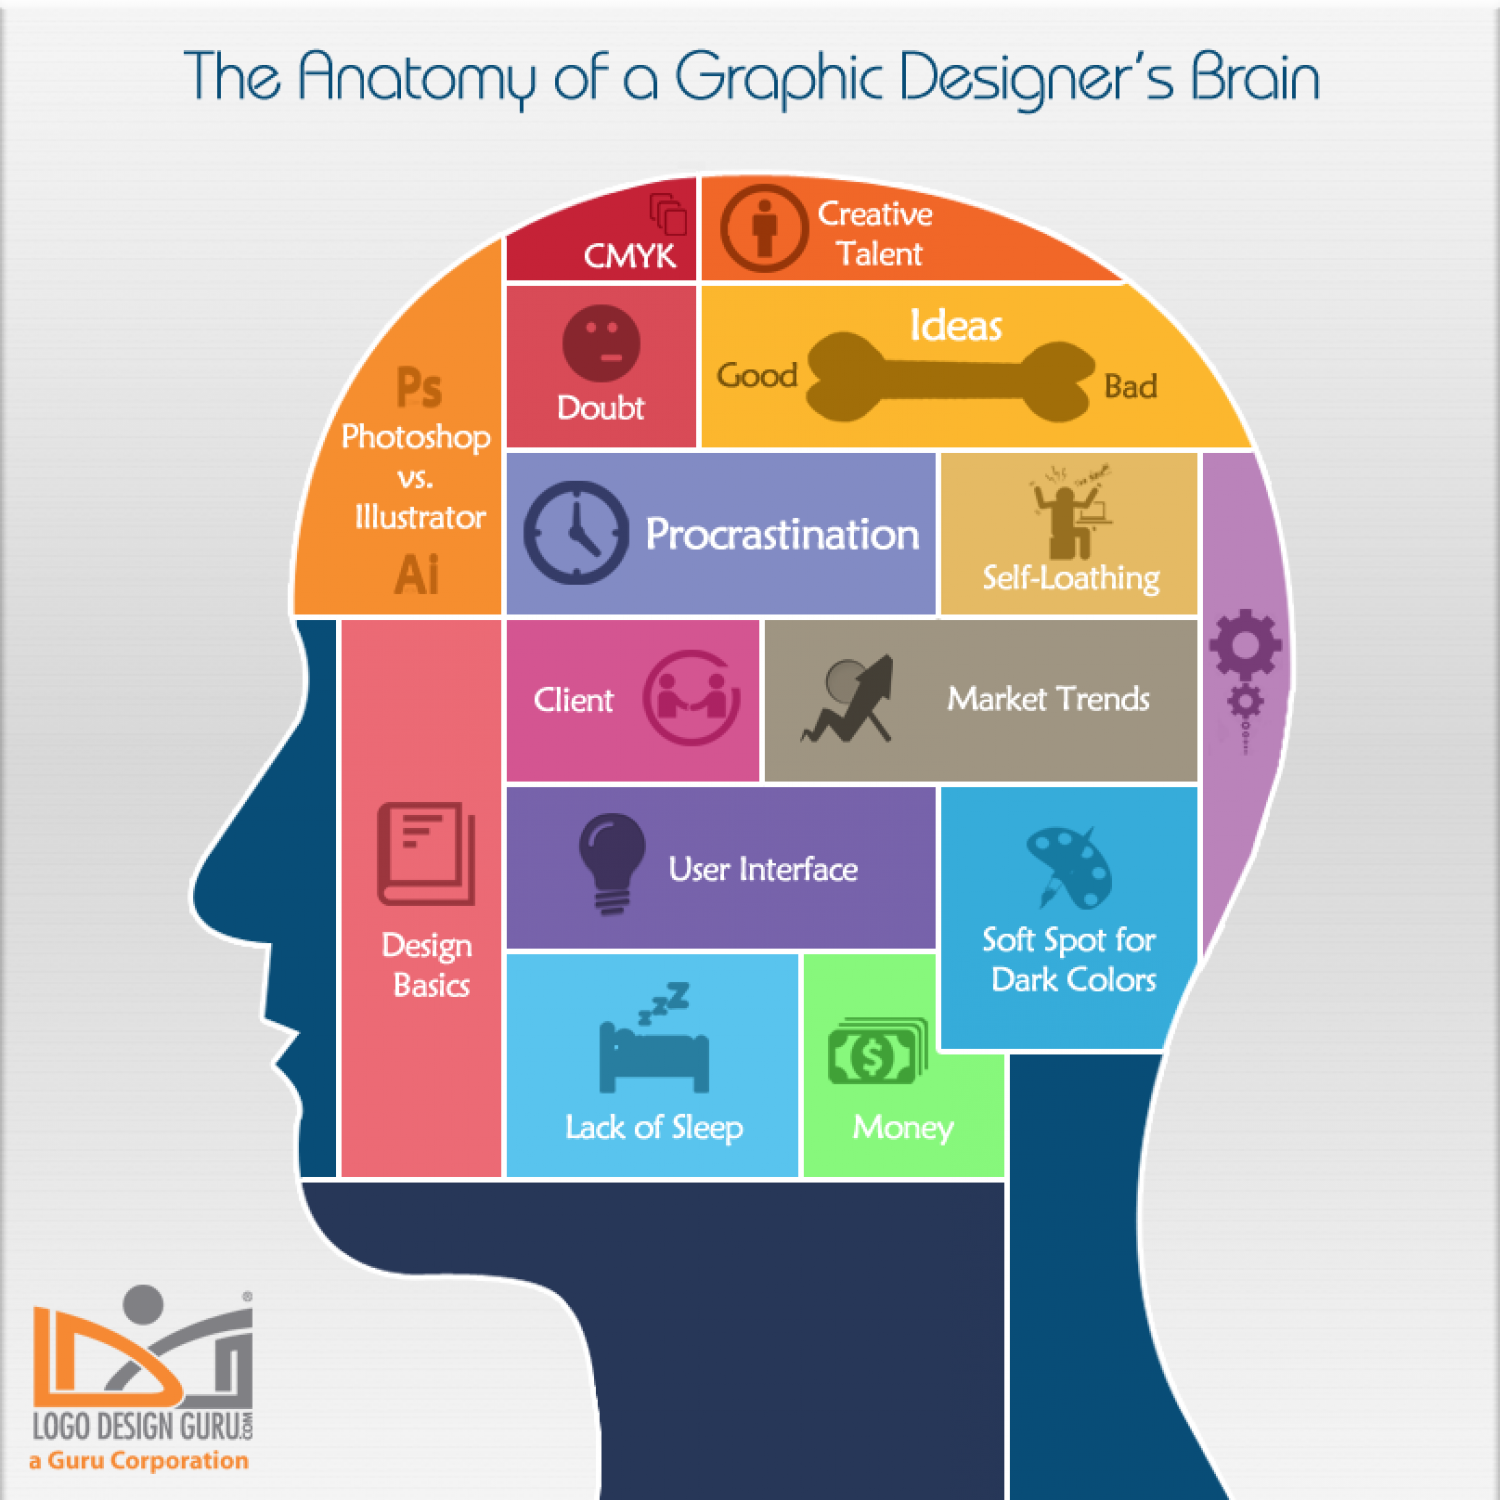 The Anatomy of a Graphic Designer's Brain Infographic